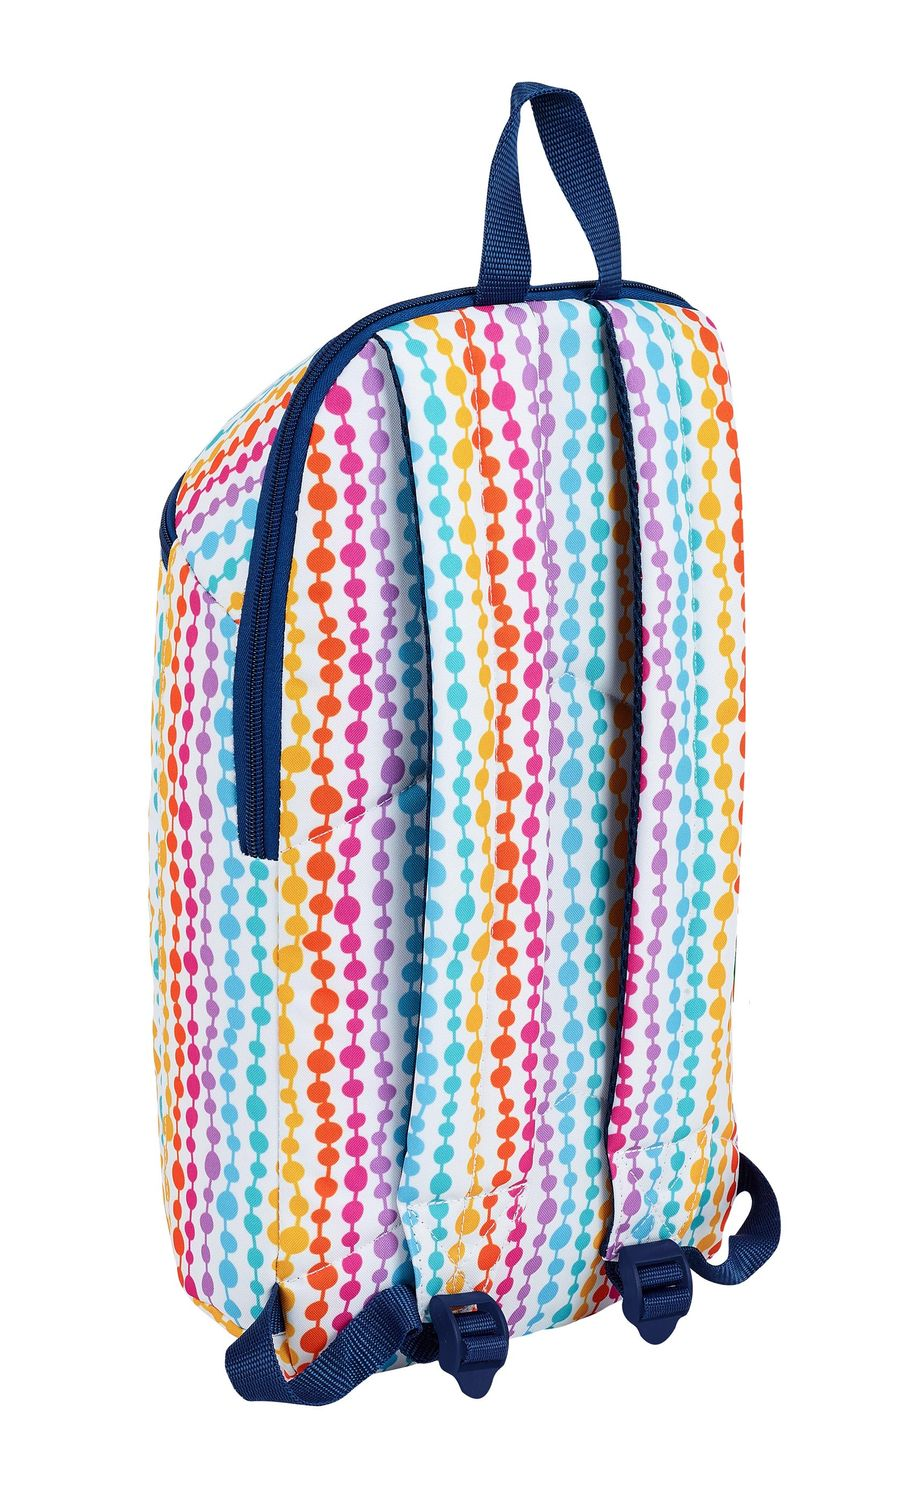 BENETTON PEARLS Backpack Rucksack 39cm – image 2